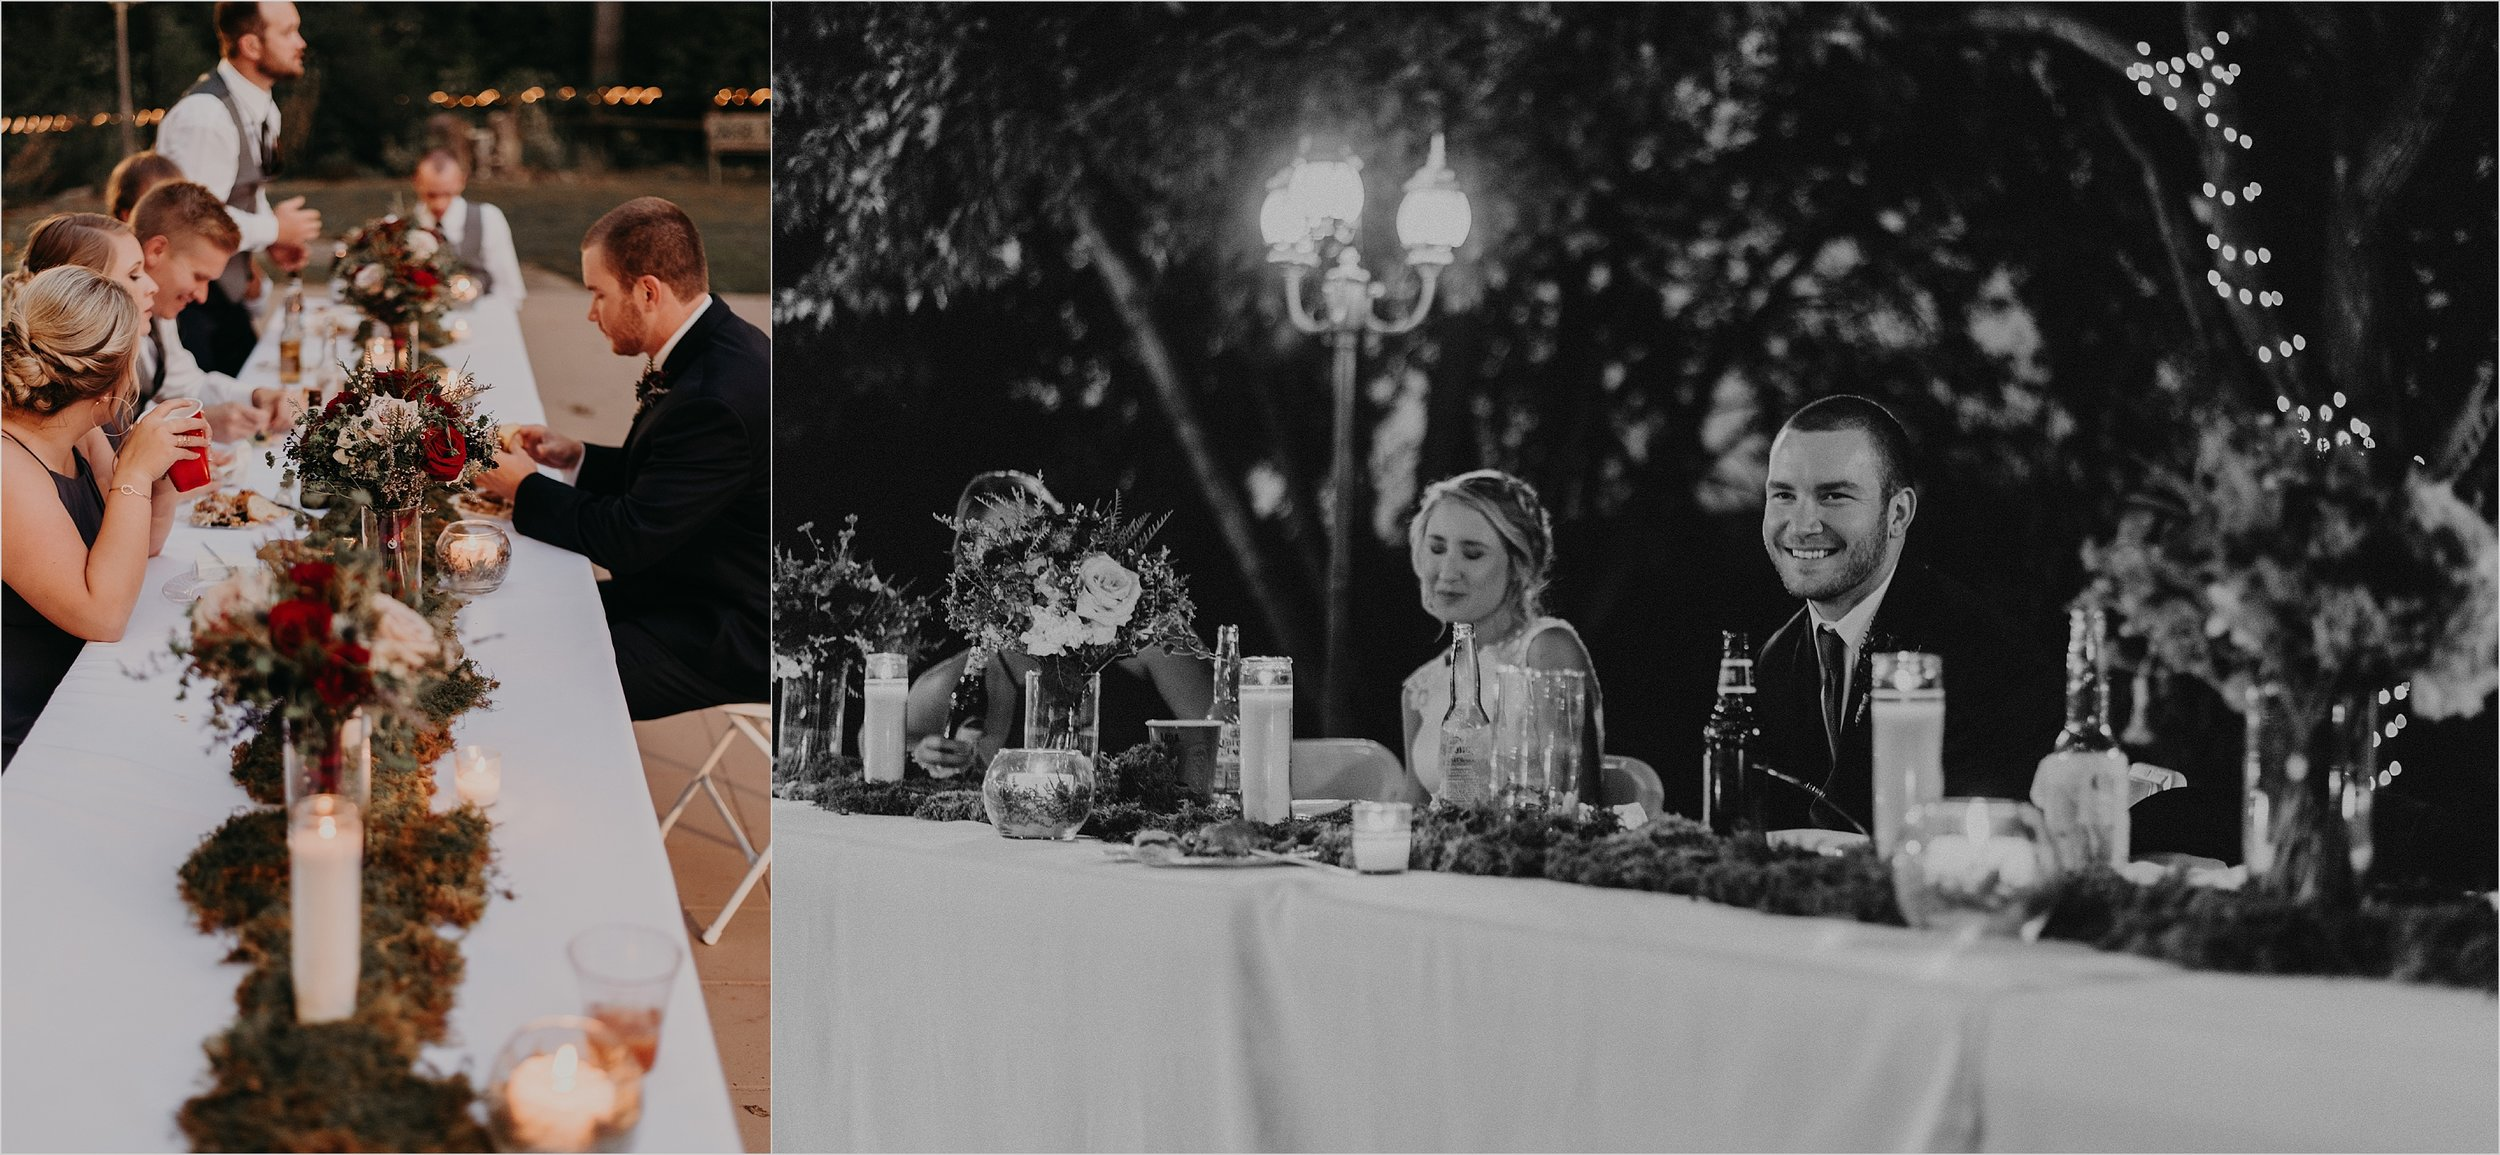 Toasts and dinner at wedding reception